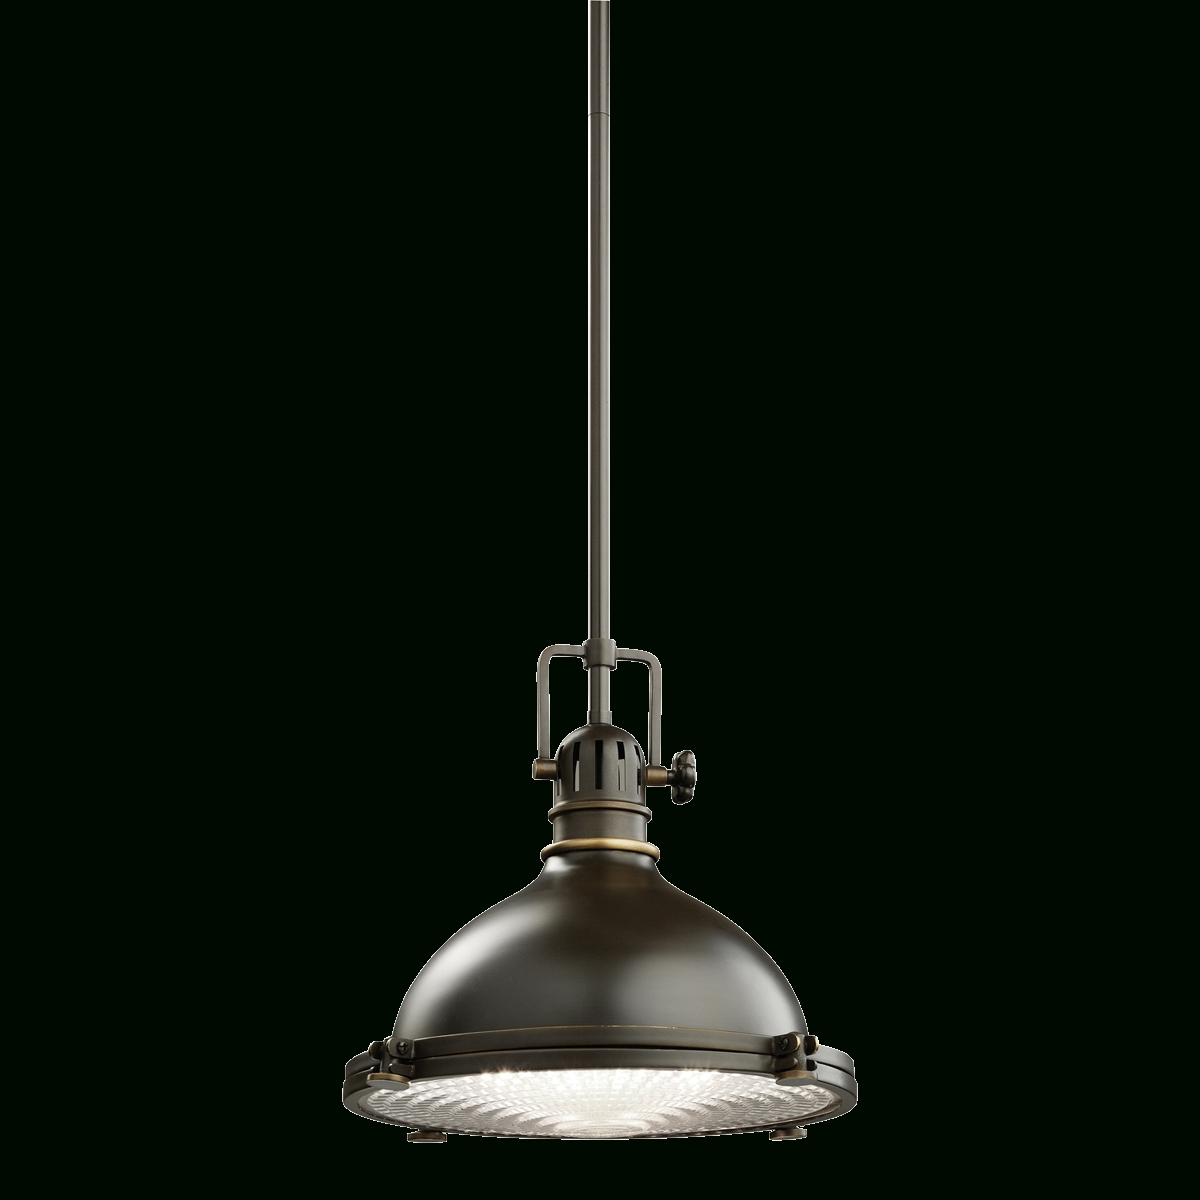 2018 popular cheap industrial pendant lighting Popular light fixtures 2017